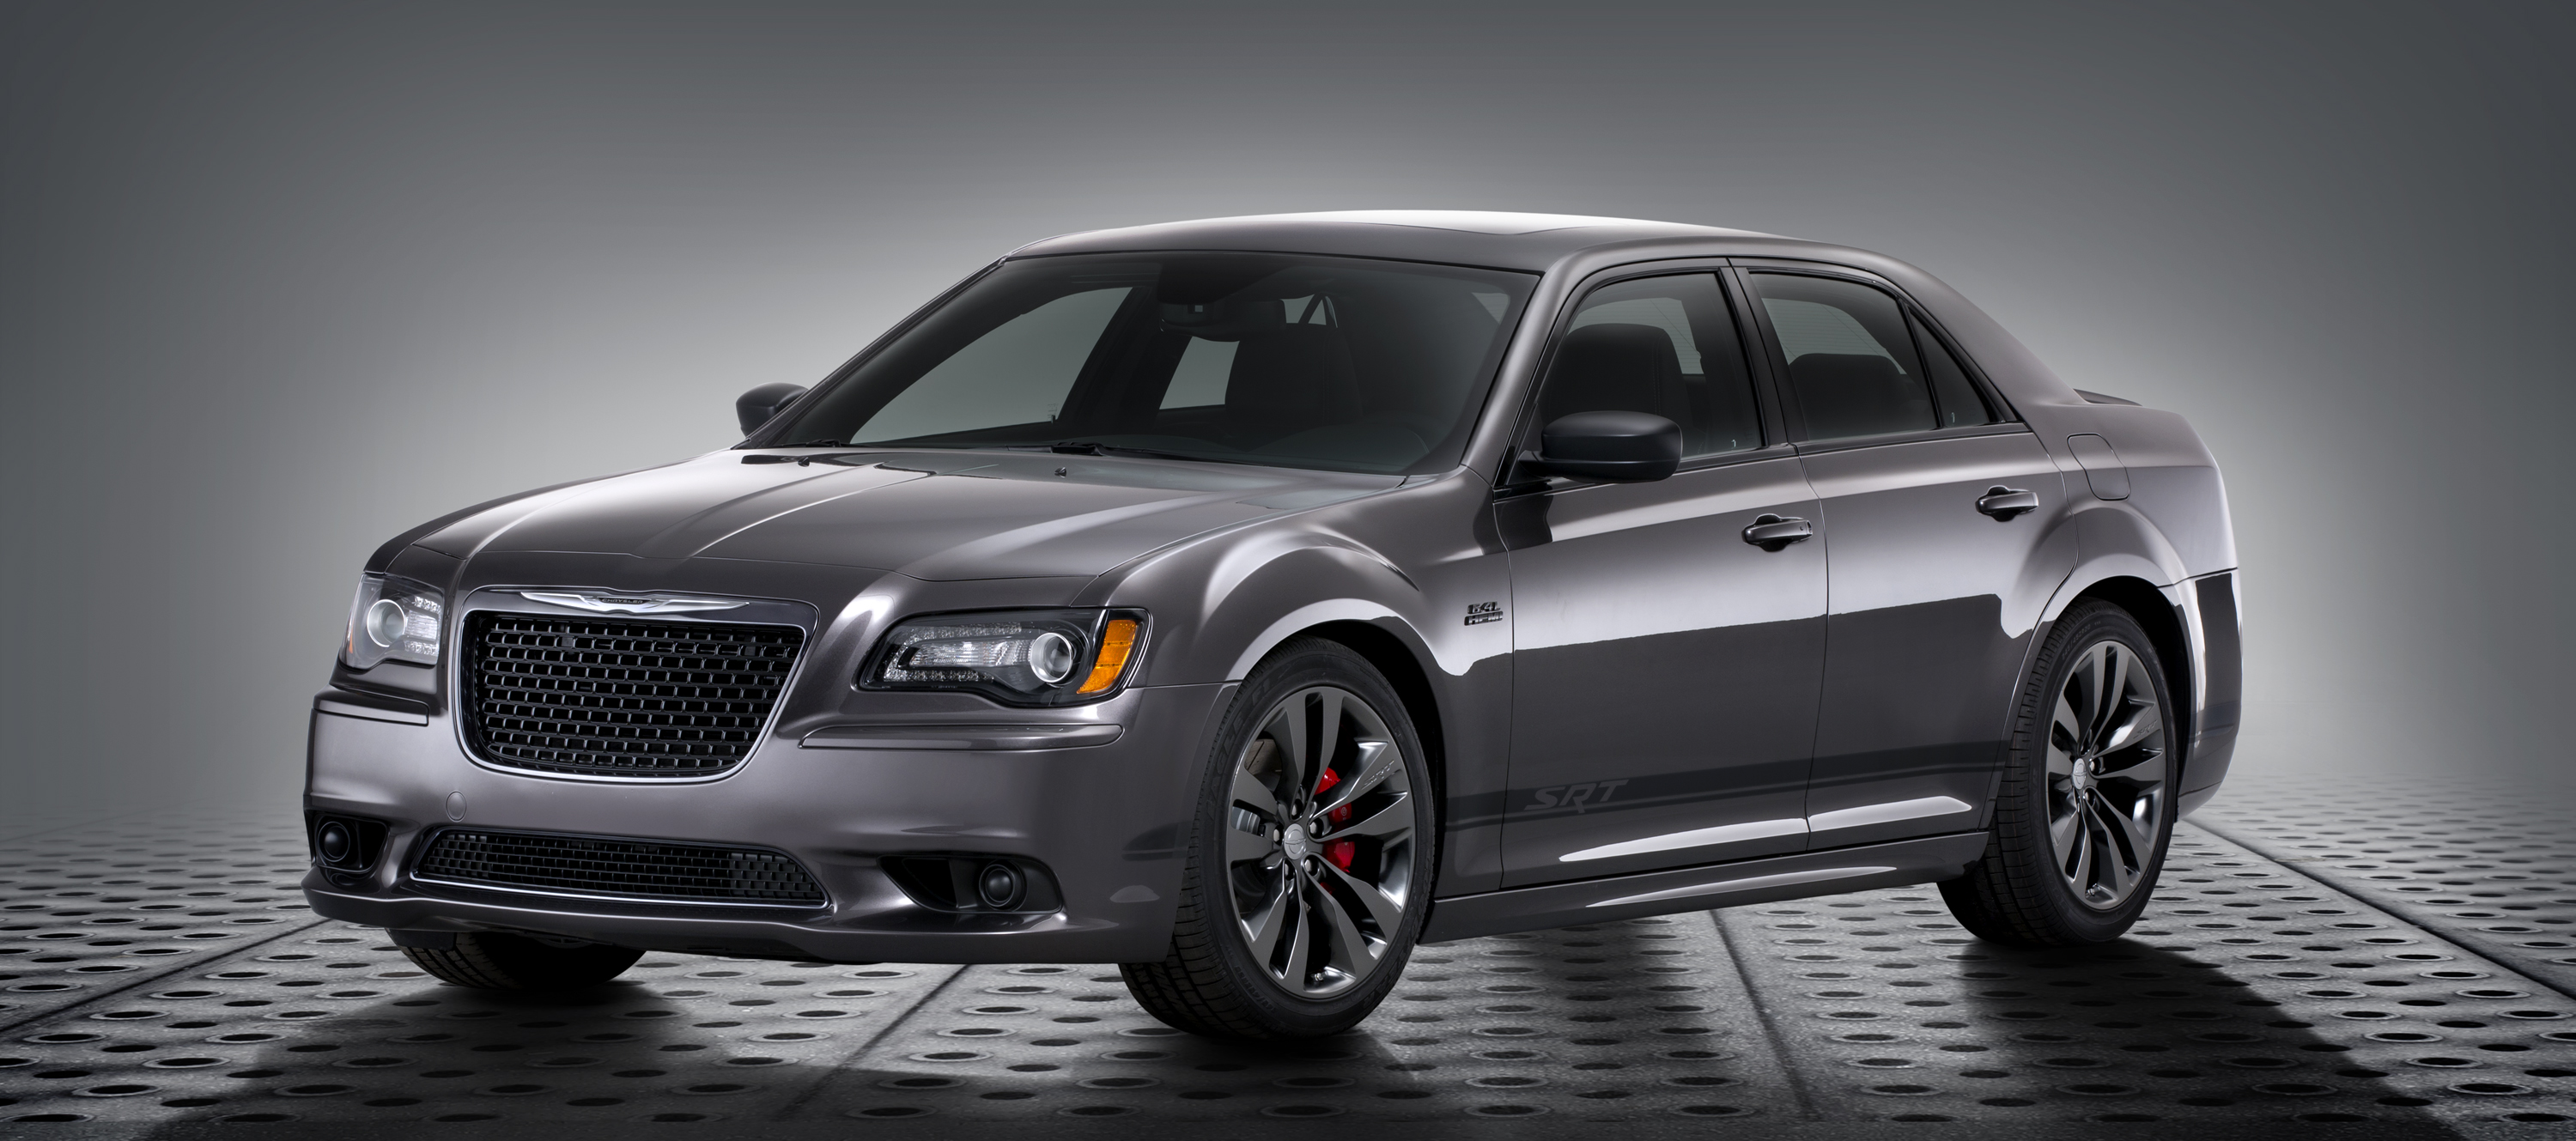 2014 chrysler 300 srt satin vapor edition top speed. Black Bedroom Furniture Sets. Home Design Ideas